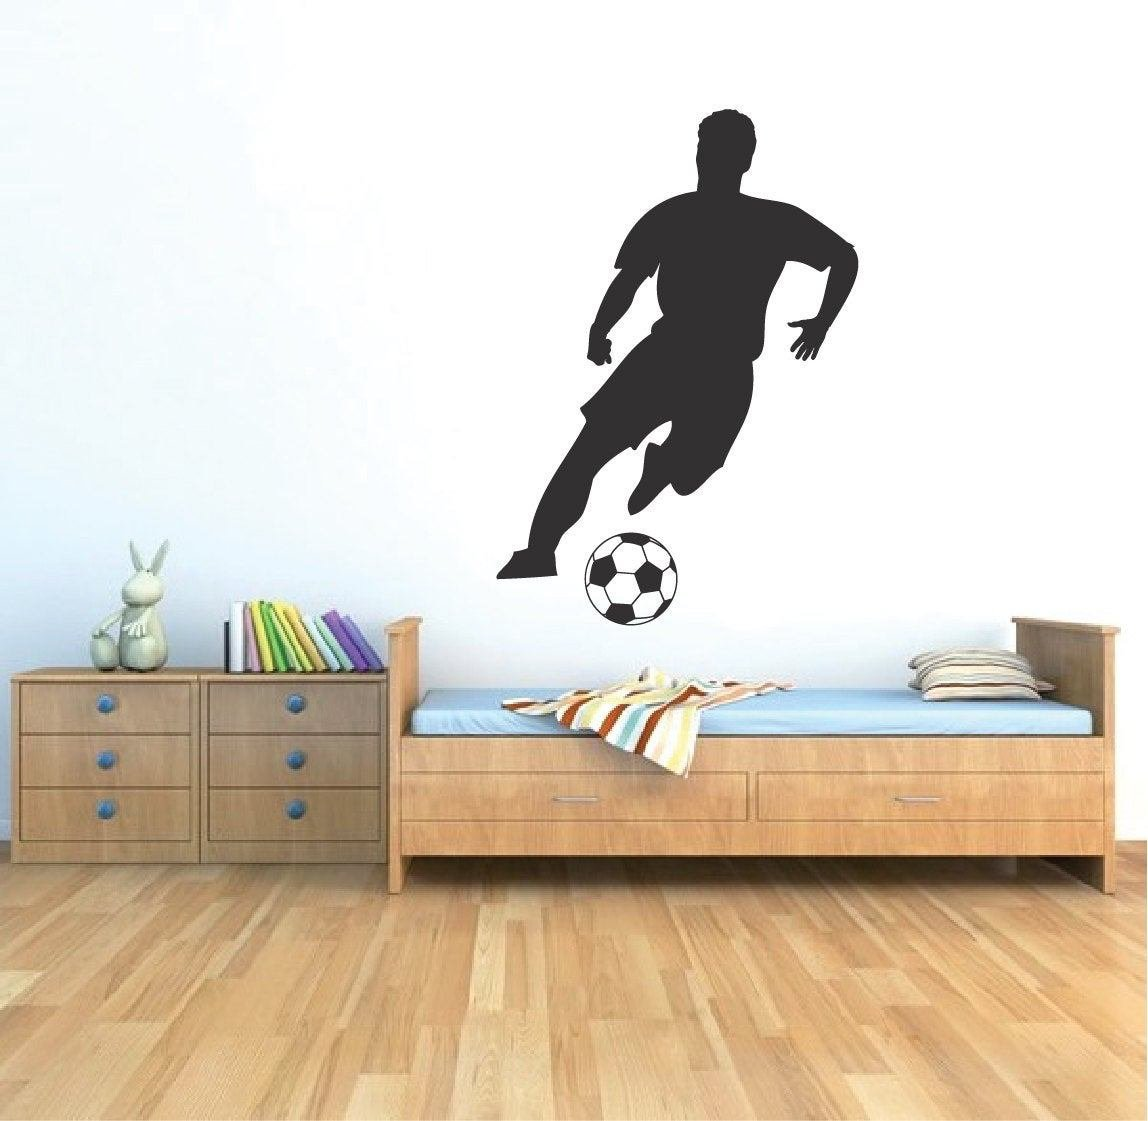 Best Soccer Player Wall Art Decal Sticker For Kids Bedroom Soccer With Pictures